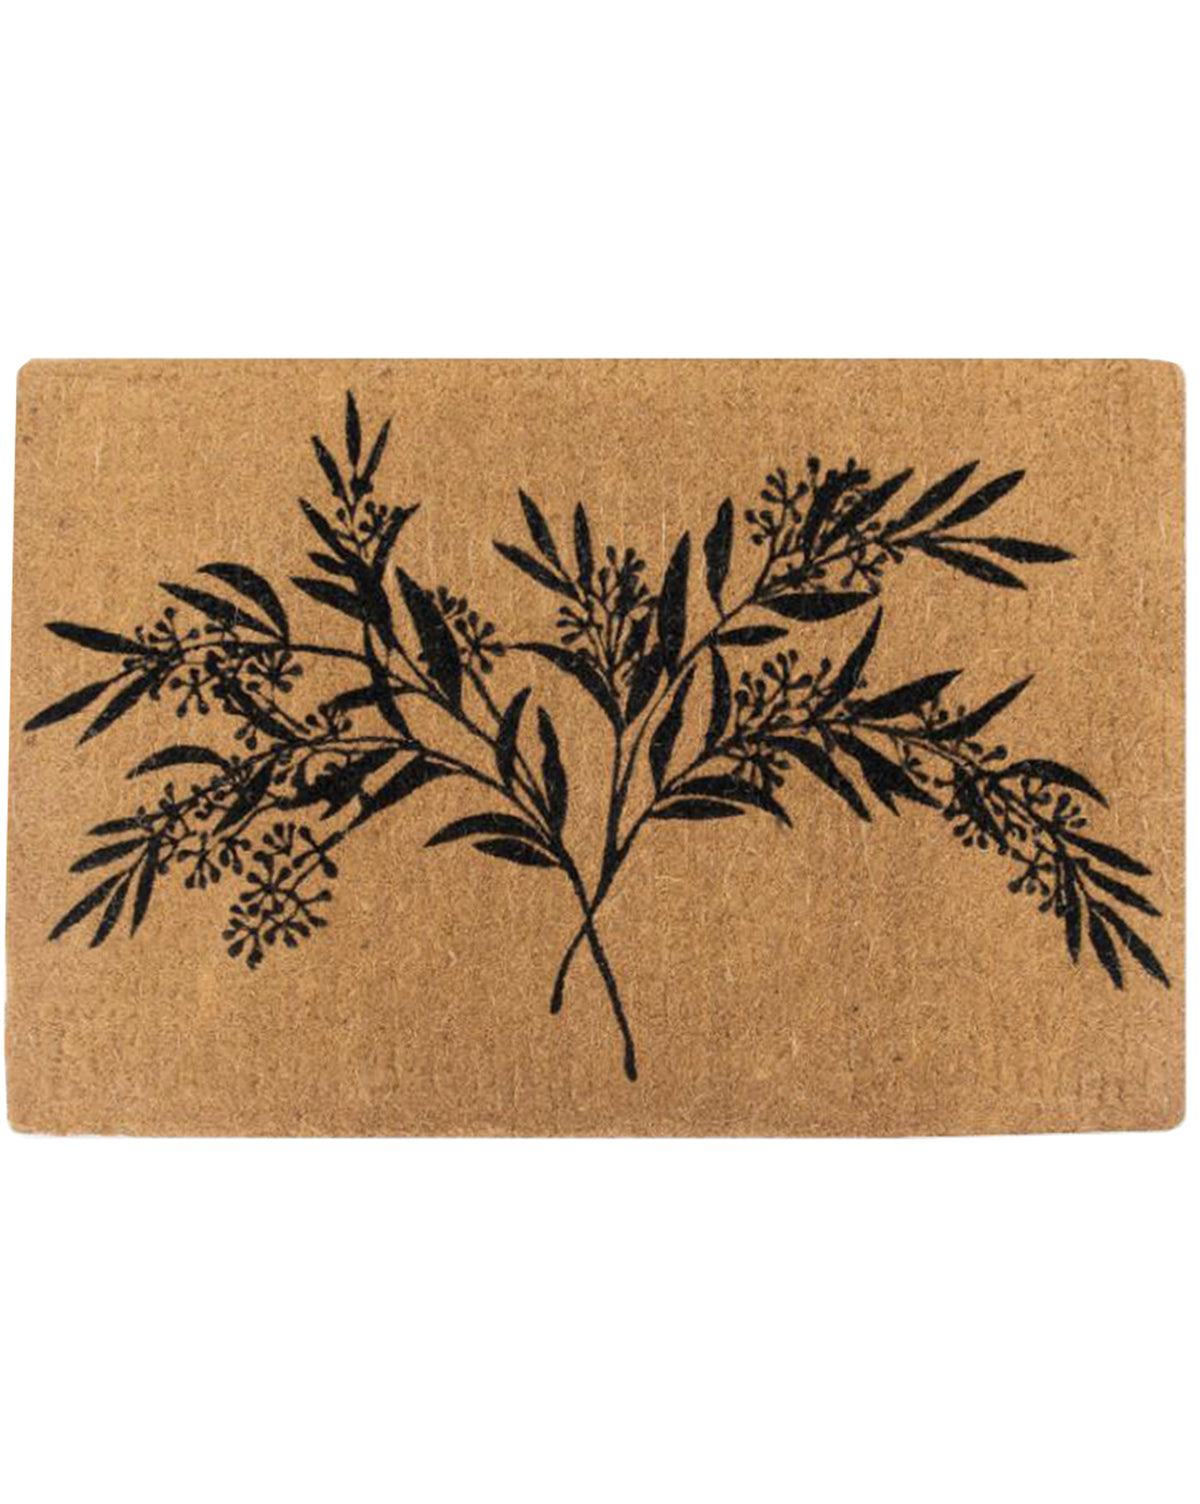 Eucalyptus Bundle Doormat